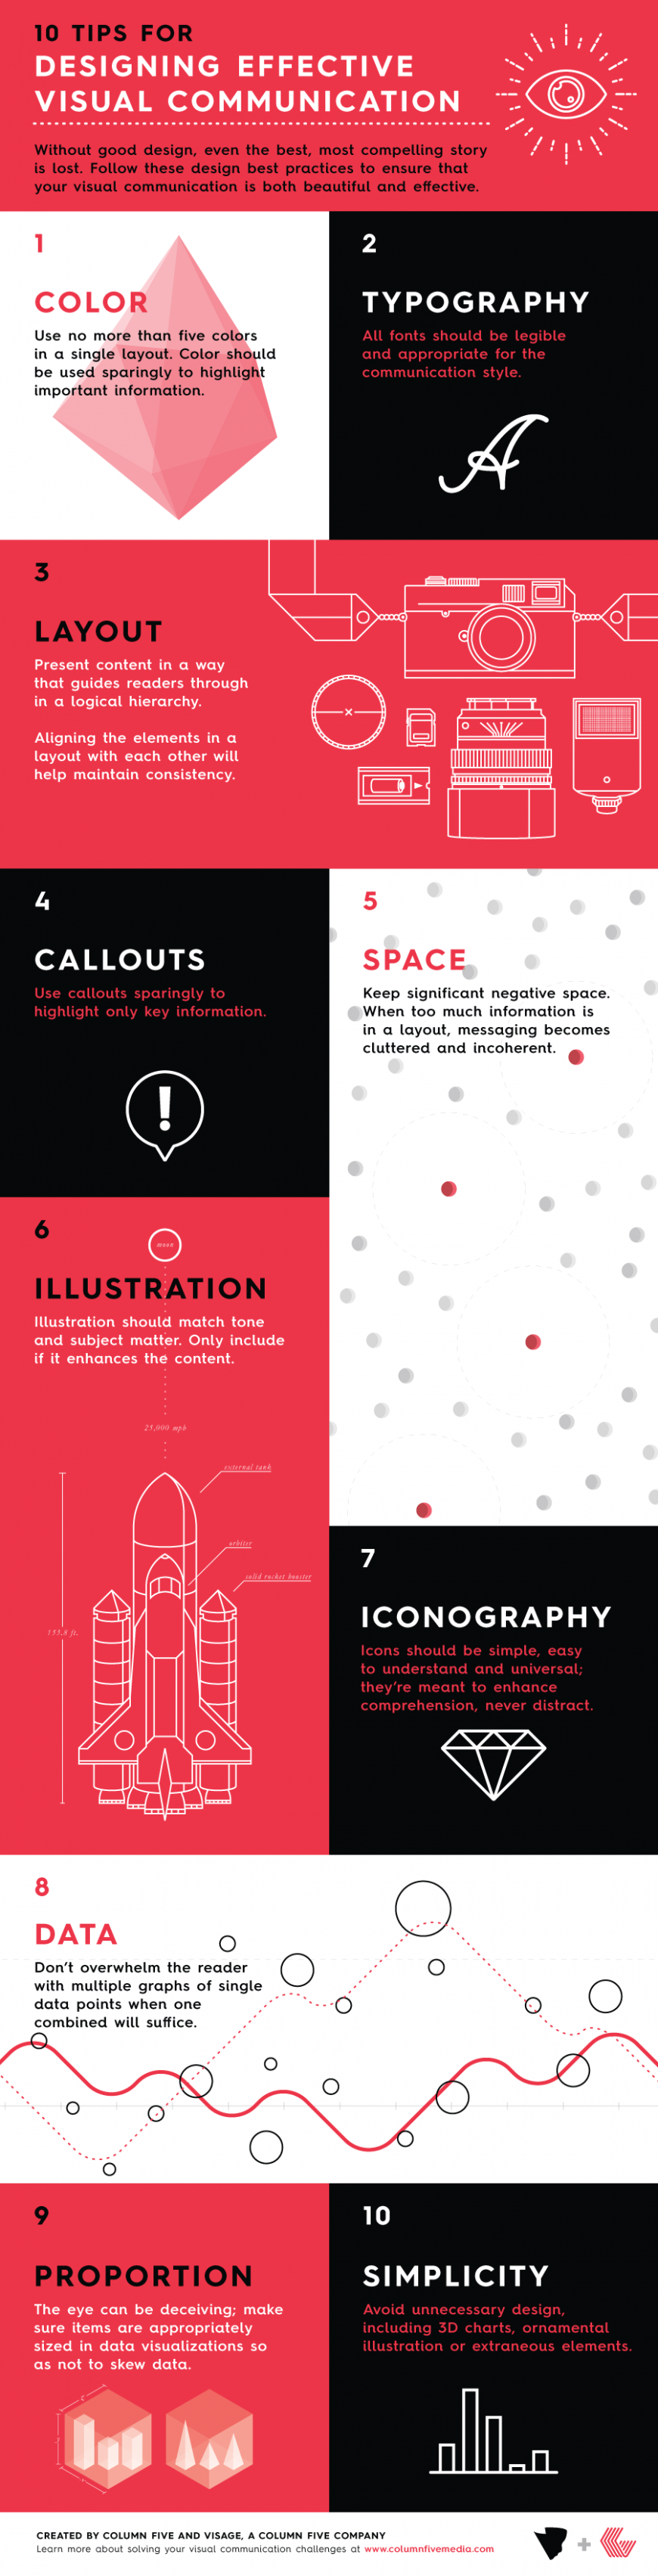 Reasons Why Visual Communication Is Even better